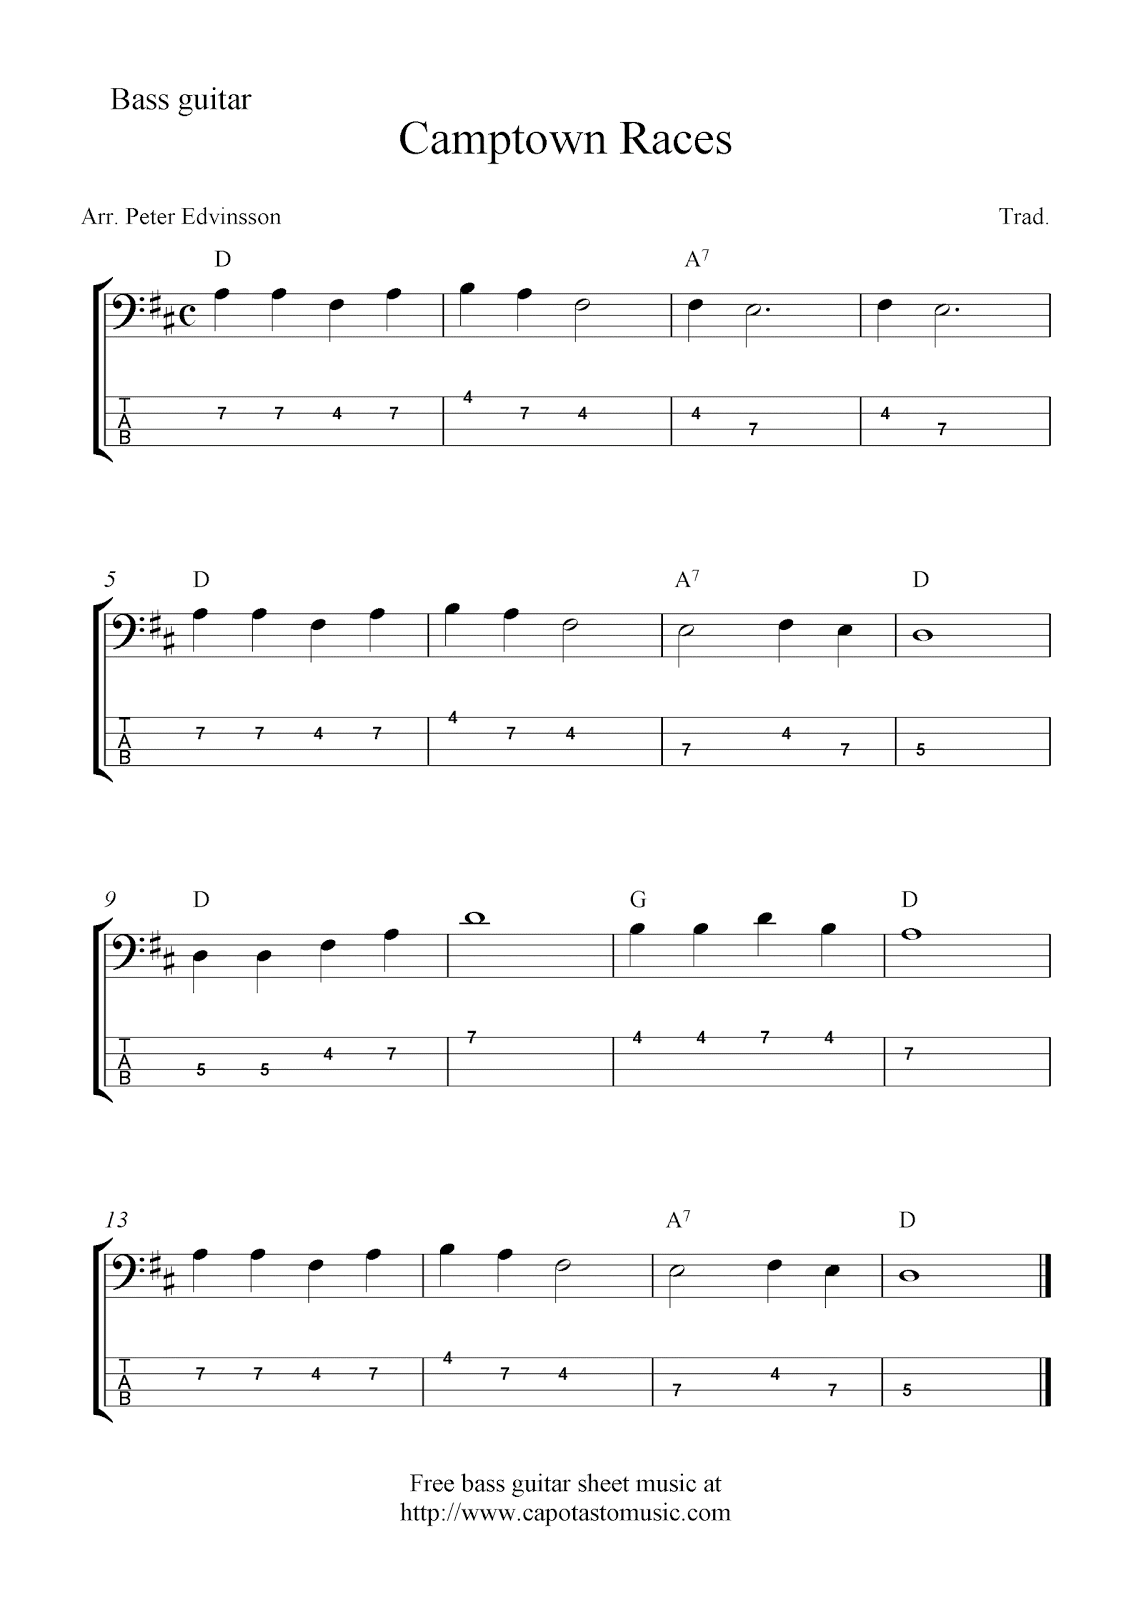 Free bass guitar tab sheet music, Camptown Races